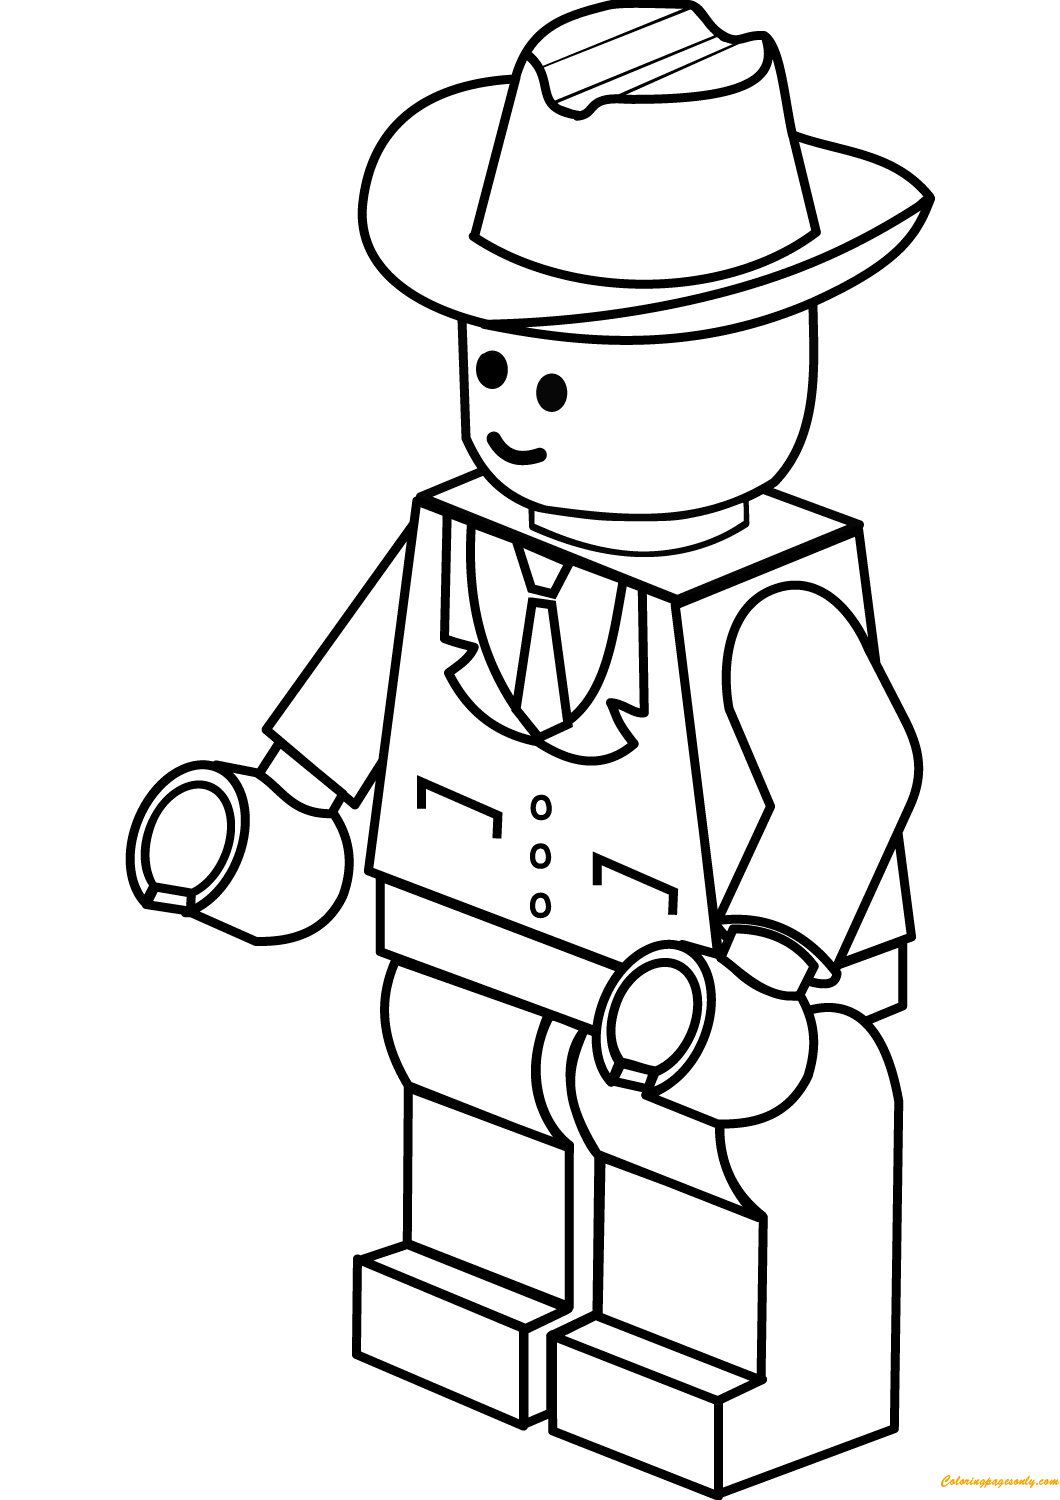 Lego City Cowboy Hat Coloring Page Free Coloring Pages Online